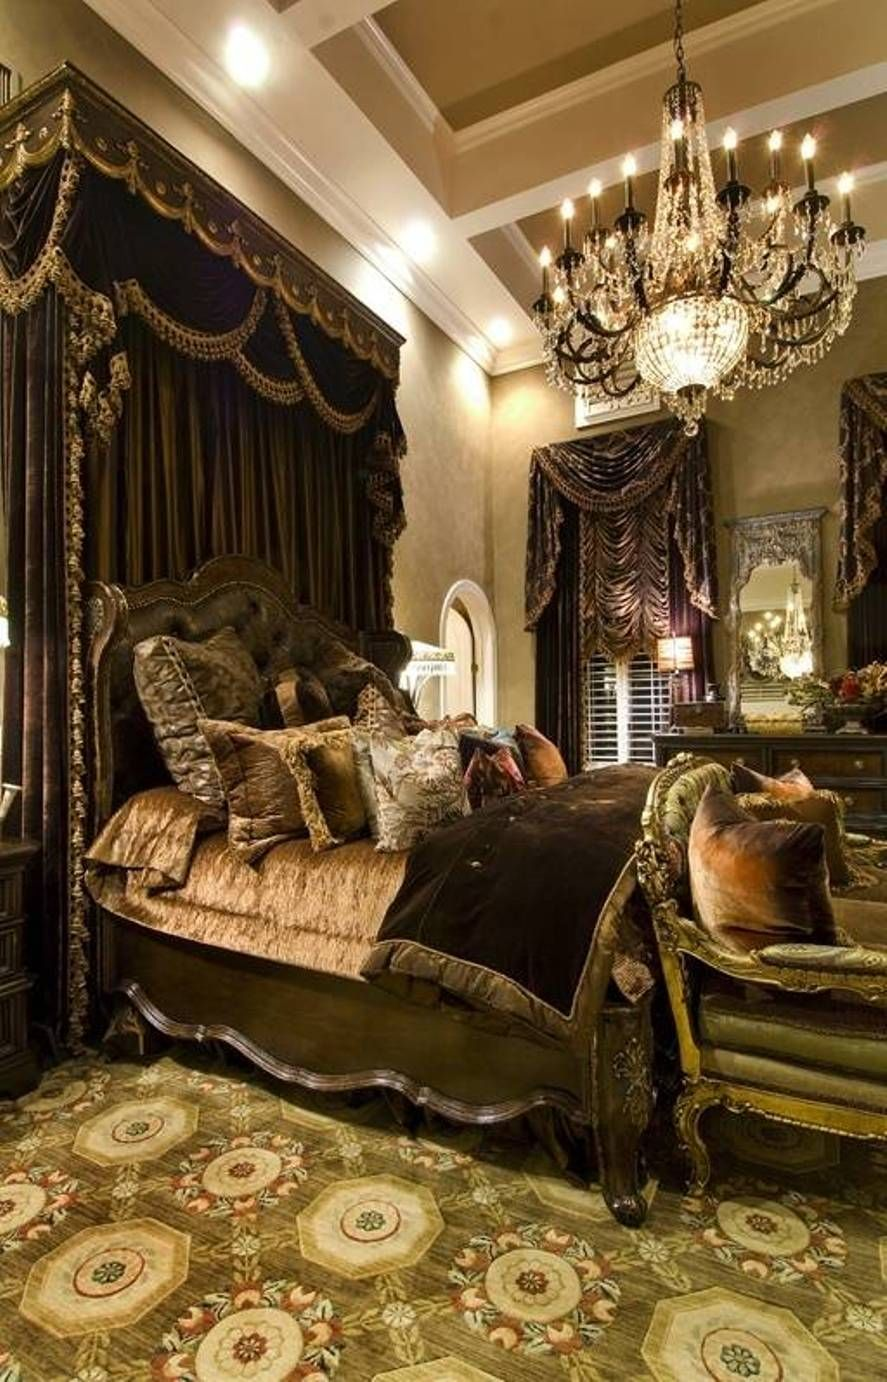 victorian bedroom furniture ideas victorian bedroom. bedroom , classic victorian ideas : with chandelier and black canopy furniture n